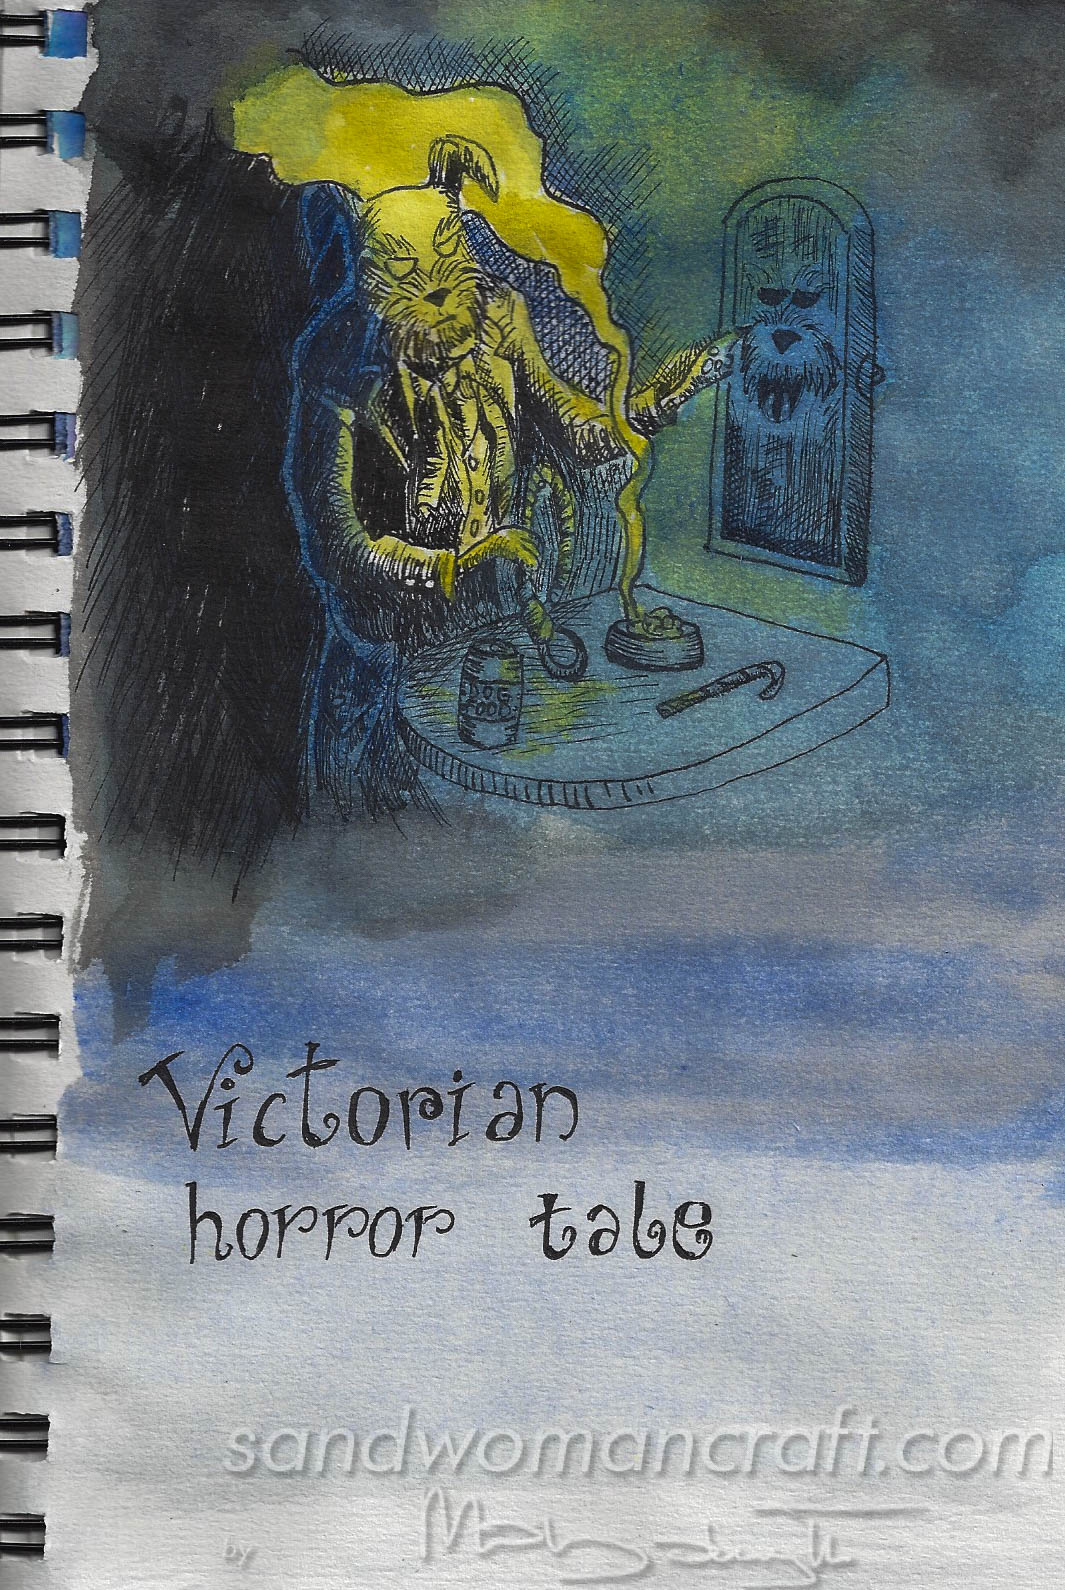 Victorian horror tale